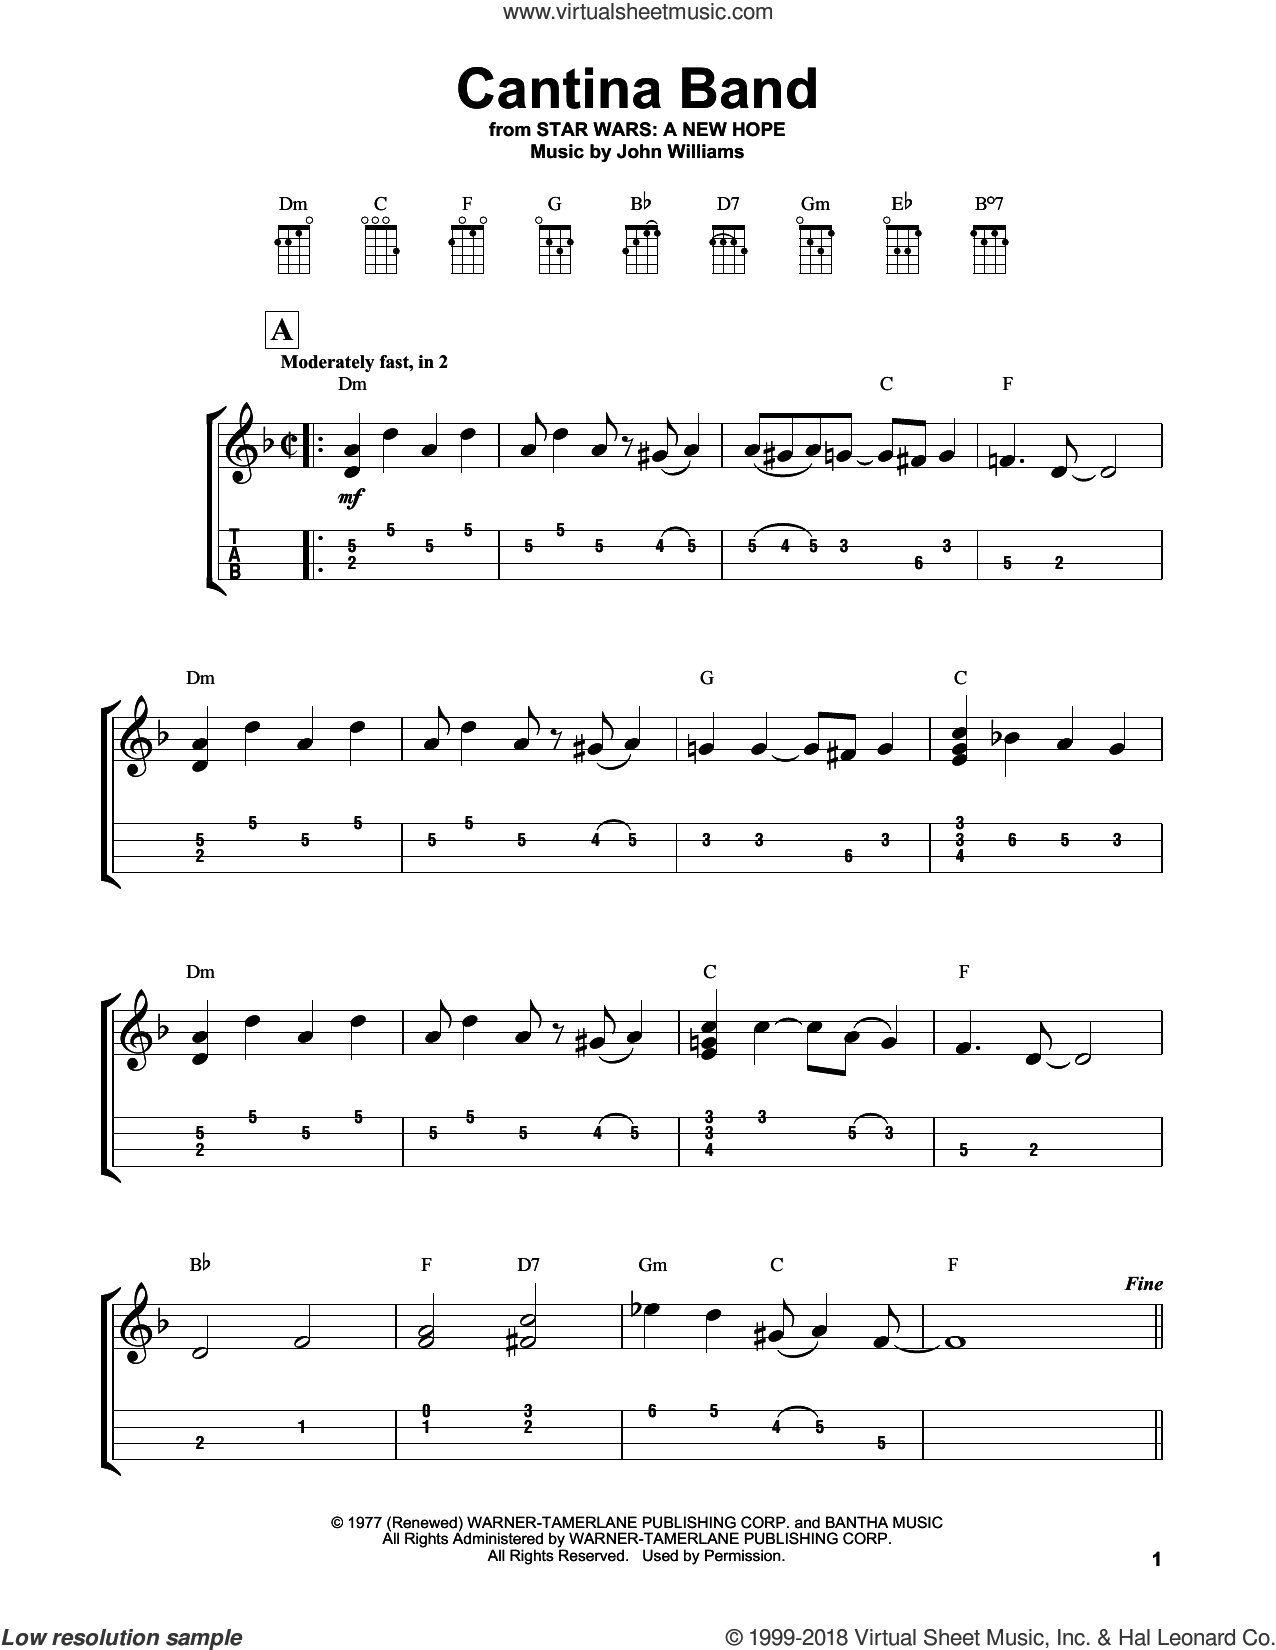 Cantina Band sheet music for ukulele by John Williams, intermediate skill level